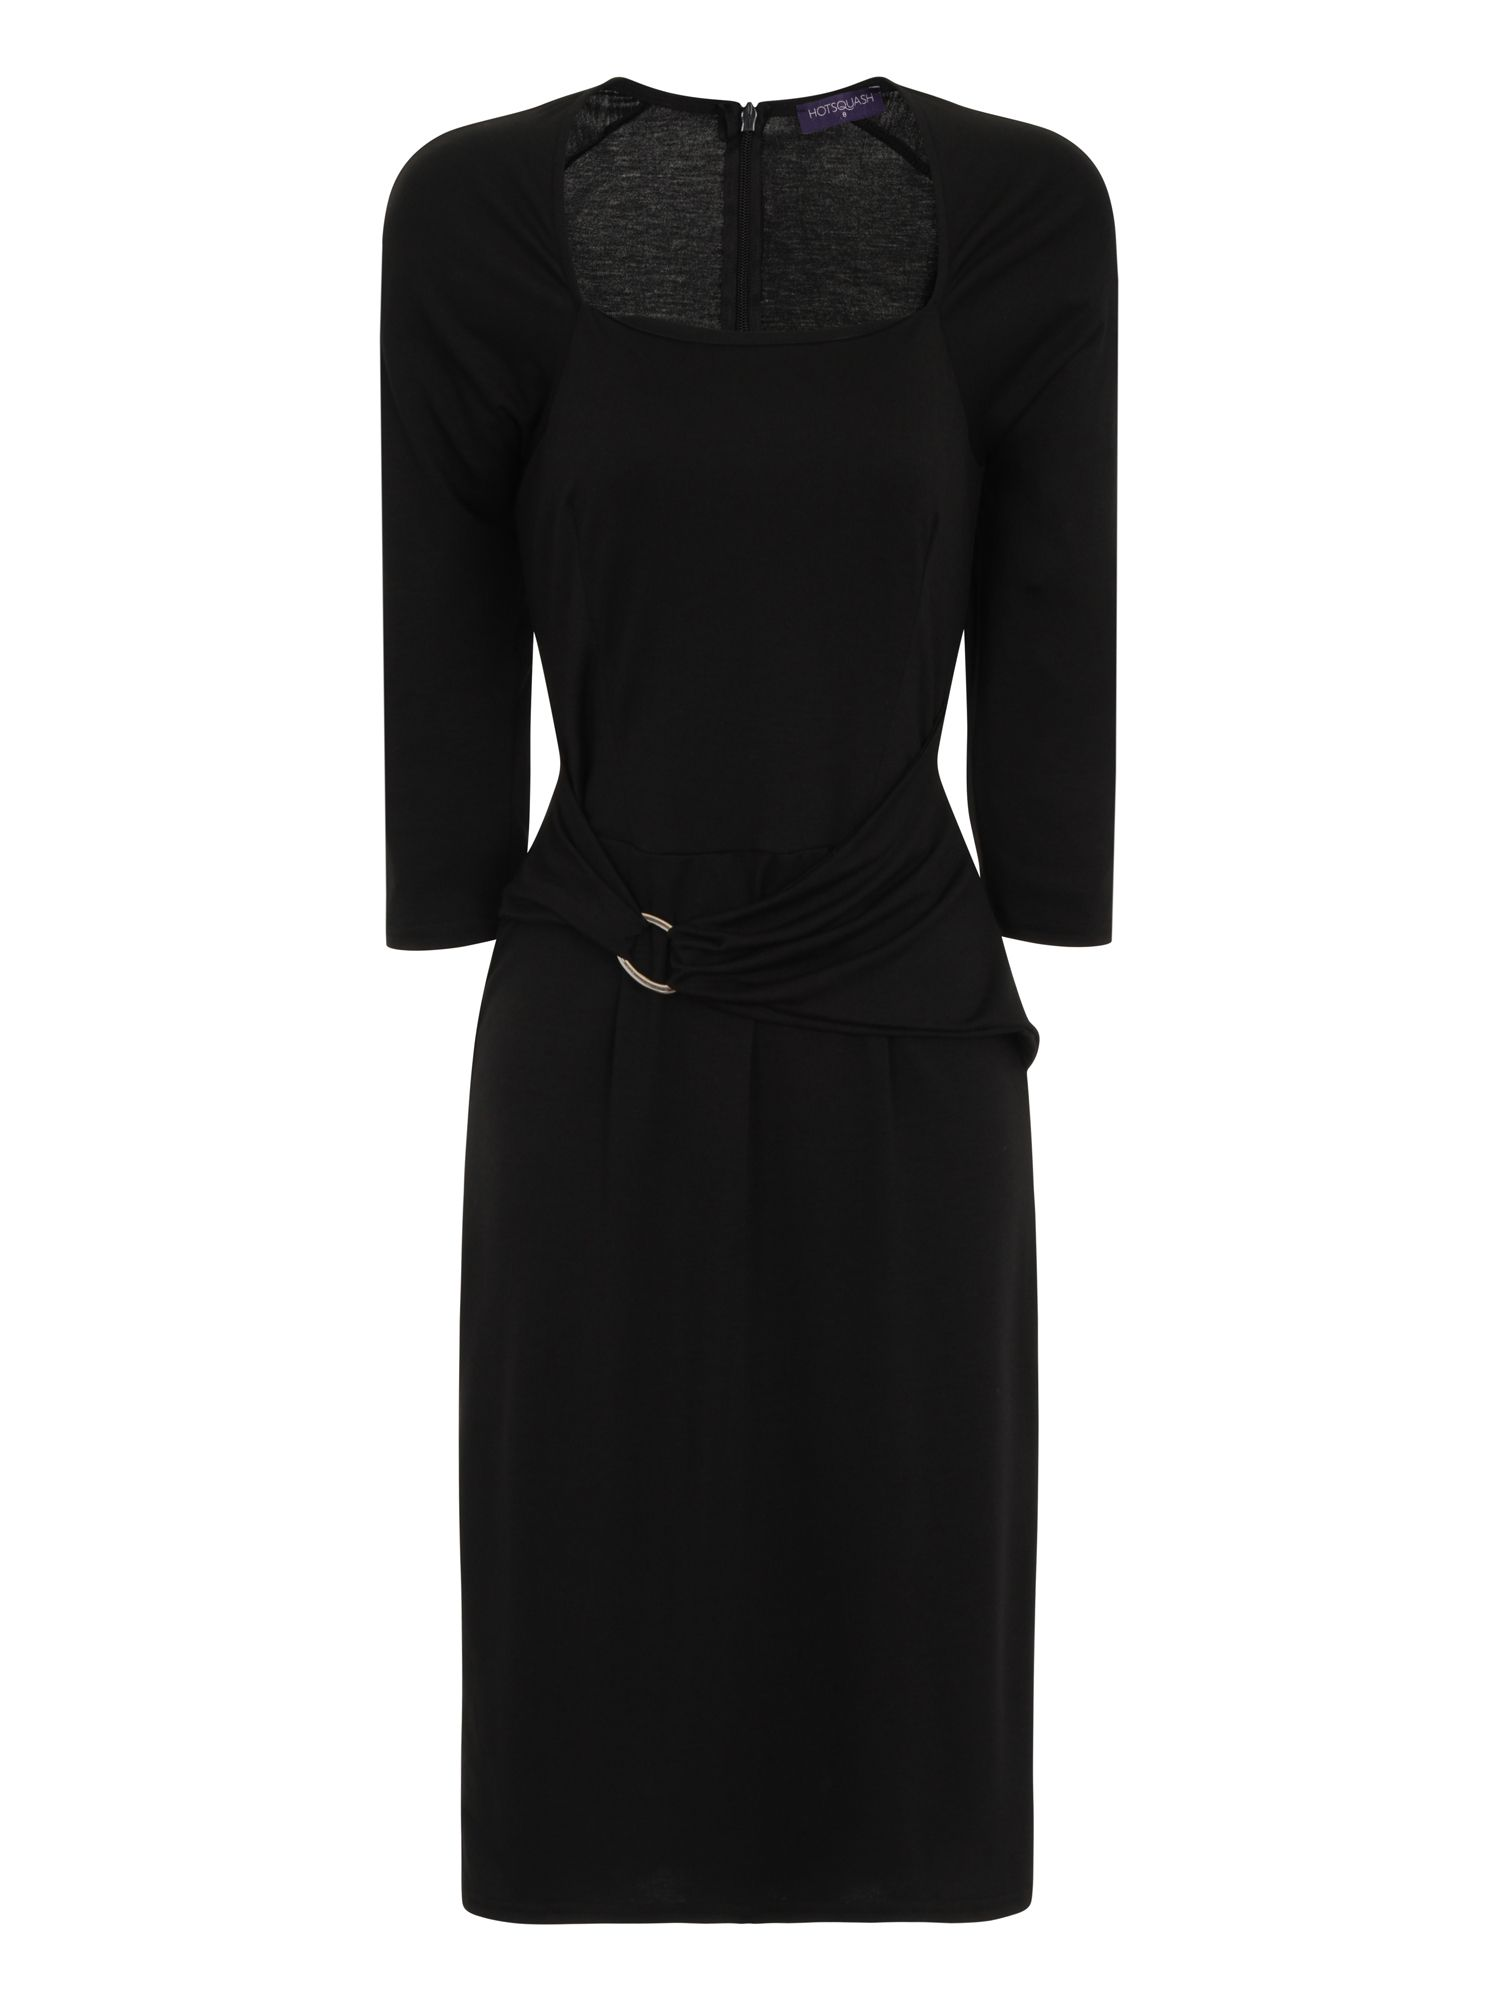 HotSquash Silver Buckle Dress in Clever Fabric, Black